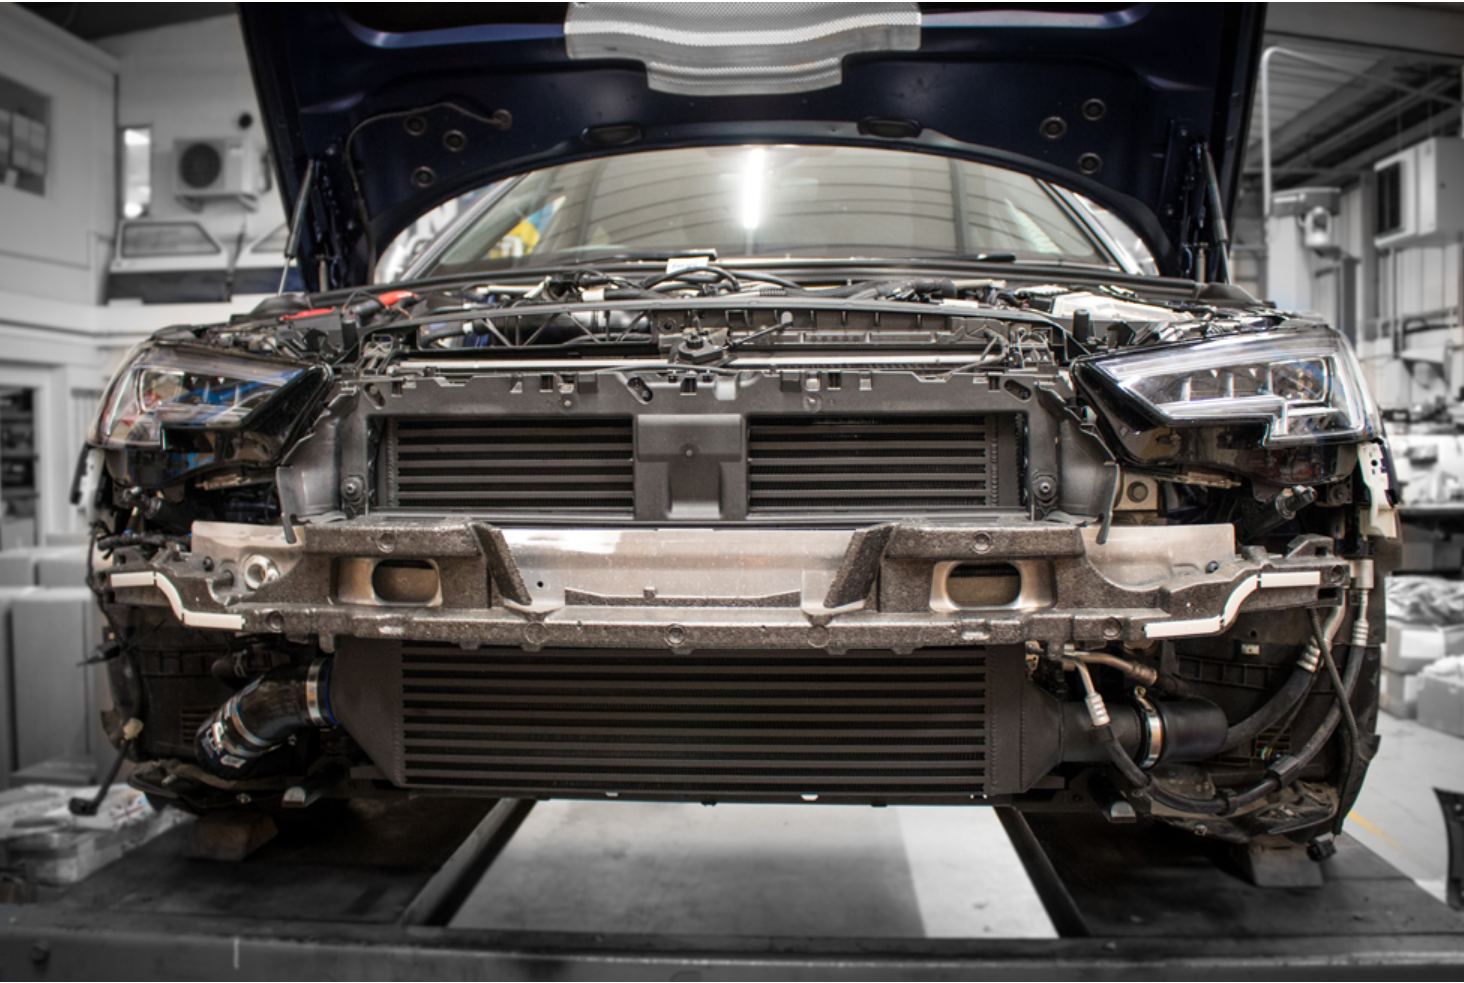 Forge Intercooler S4 mounted